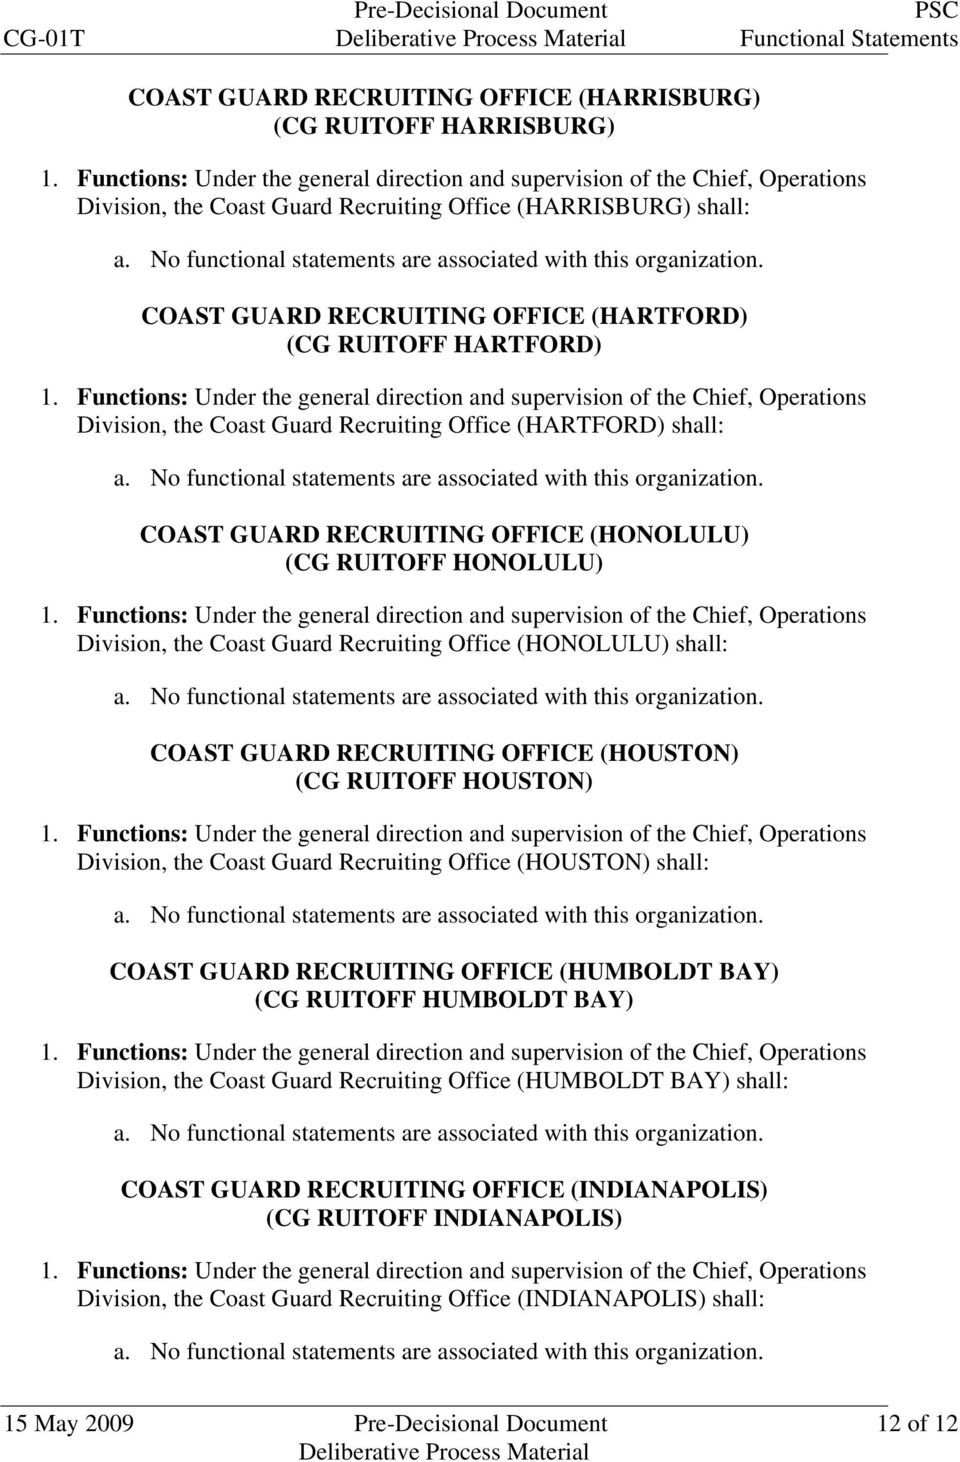 Office (HONOLULU) shall: COAST GUARD RECRUITING OFFICE (HOUSTON) (CG RUITOFF HOUSTON) Division, the Coast Guard Recruiting Office (HOUSTON) shall: COAST GUARD RECRUITING OFFICE (HUMBOLDT BAY) (CG